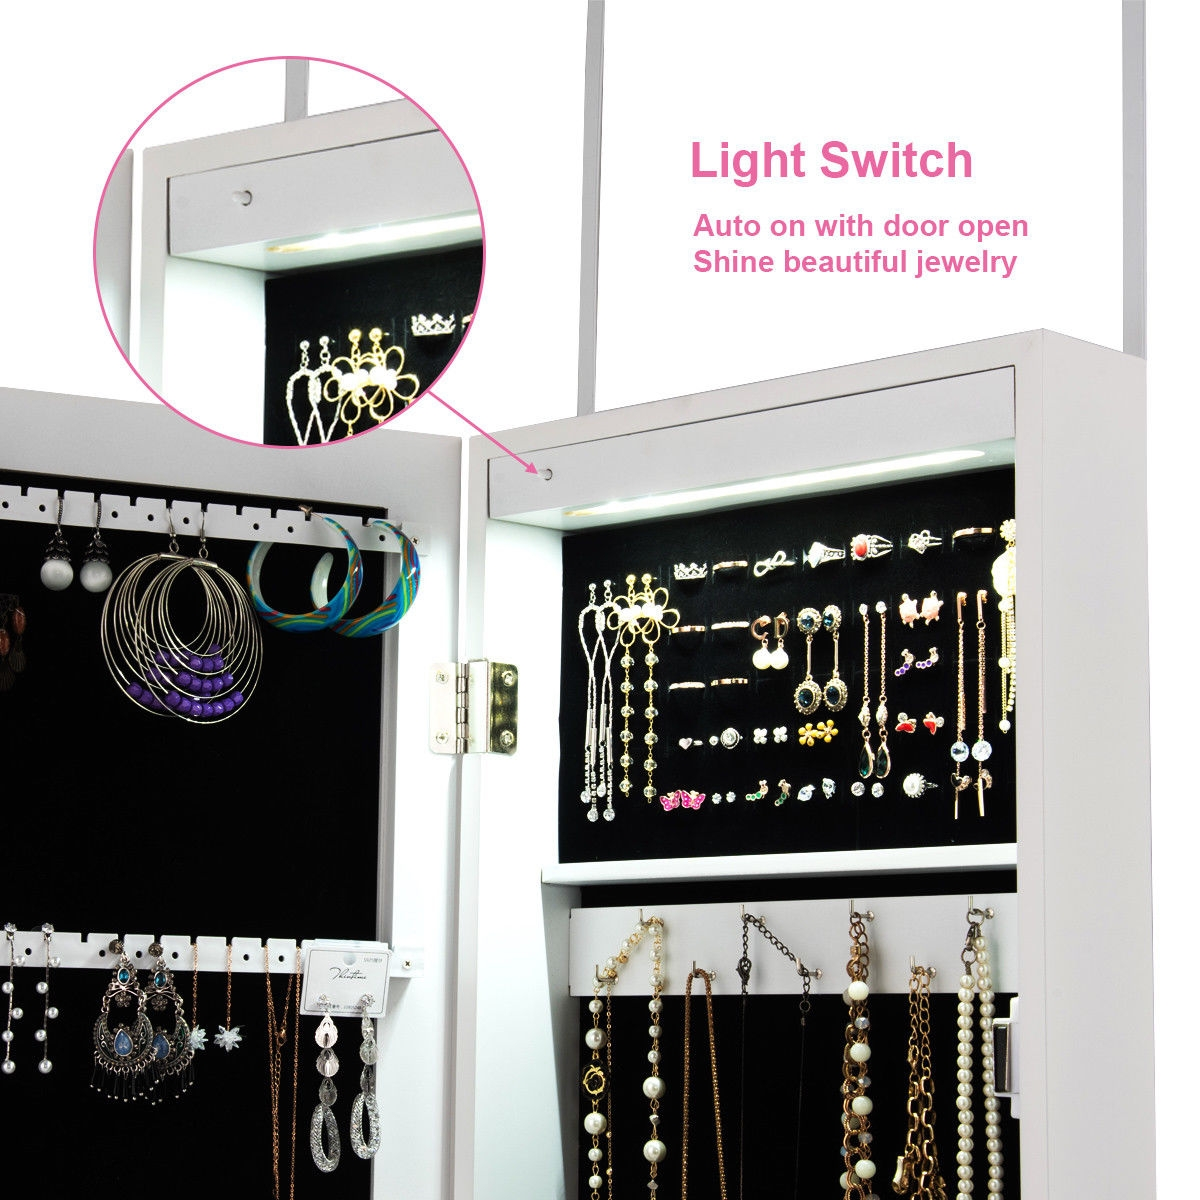 Wall And Door Mirrored Jewelry Cabinet With LED Light